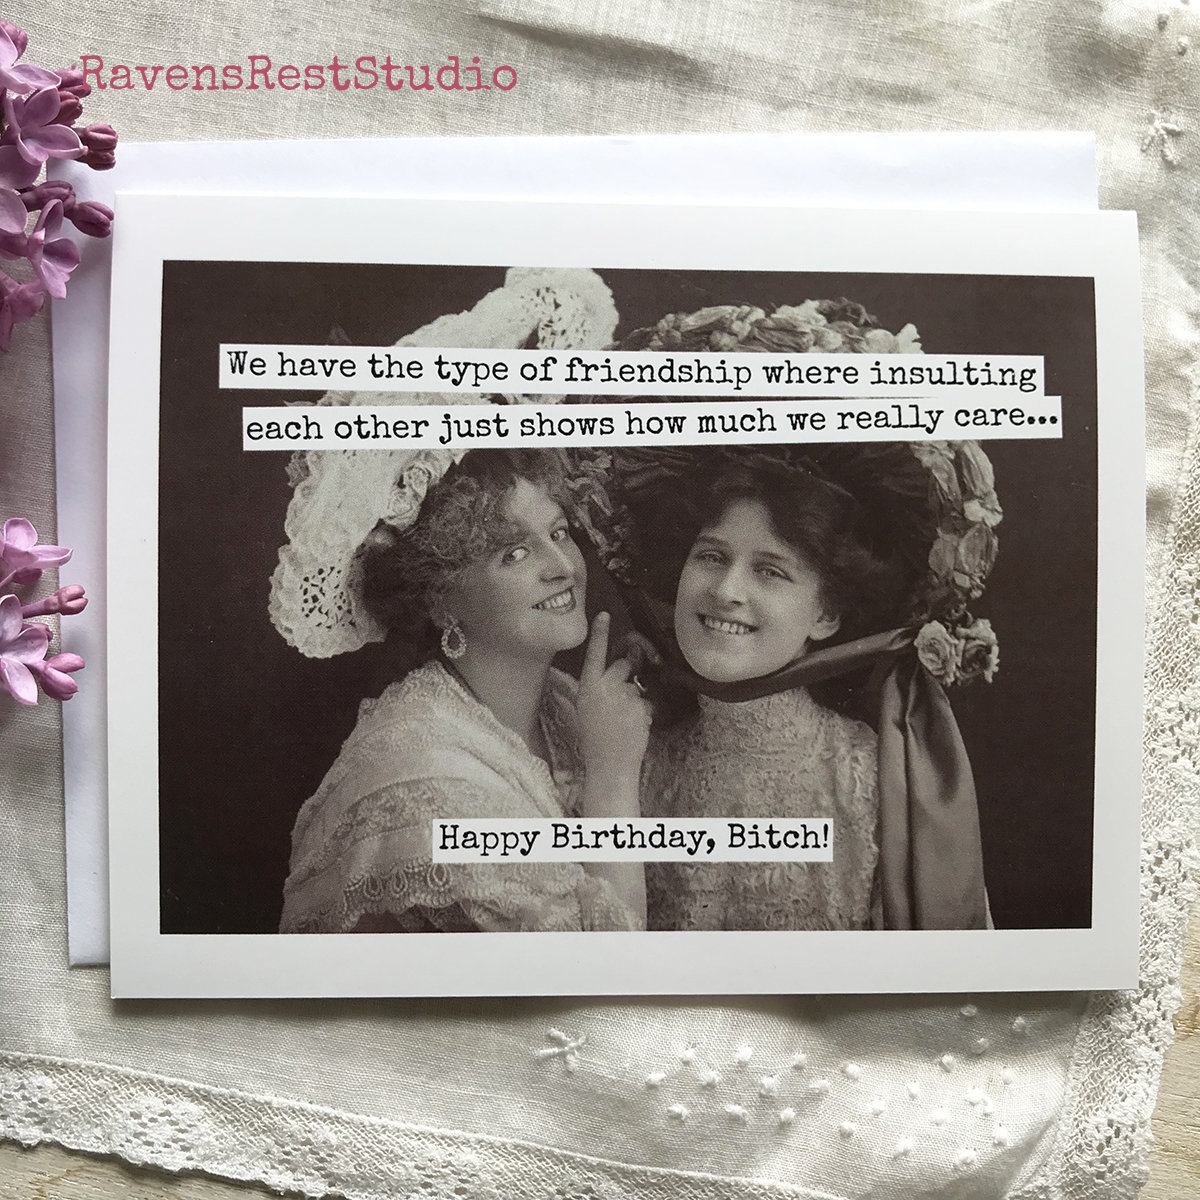 Funny Birthday Card Friendship Quote Vintage Friends Photo We Have The Type Of Where Insulting 516